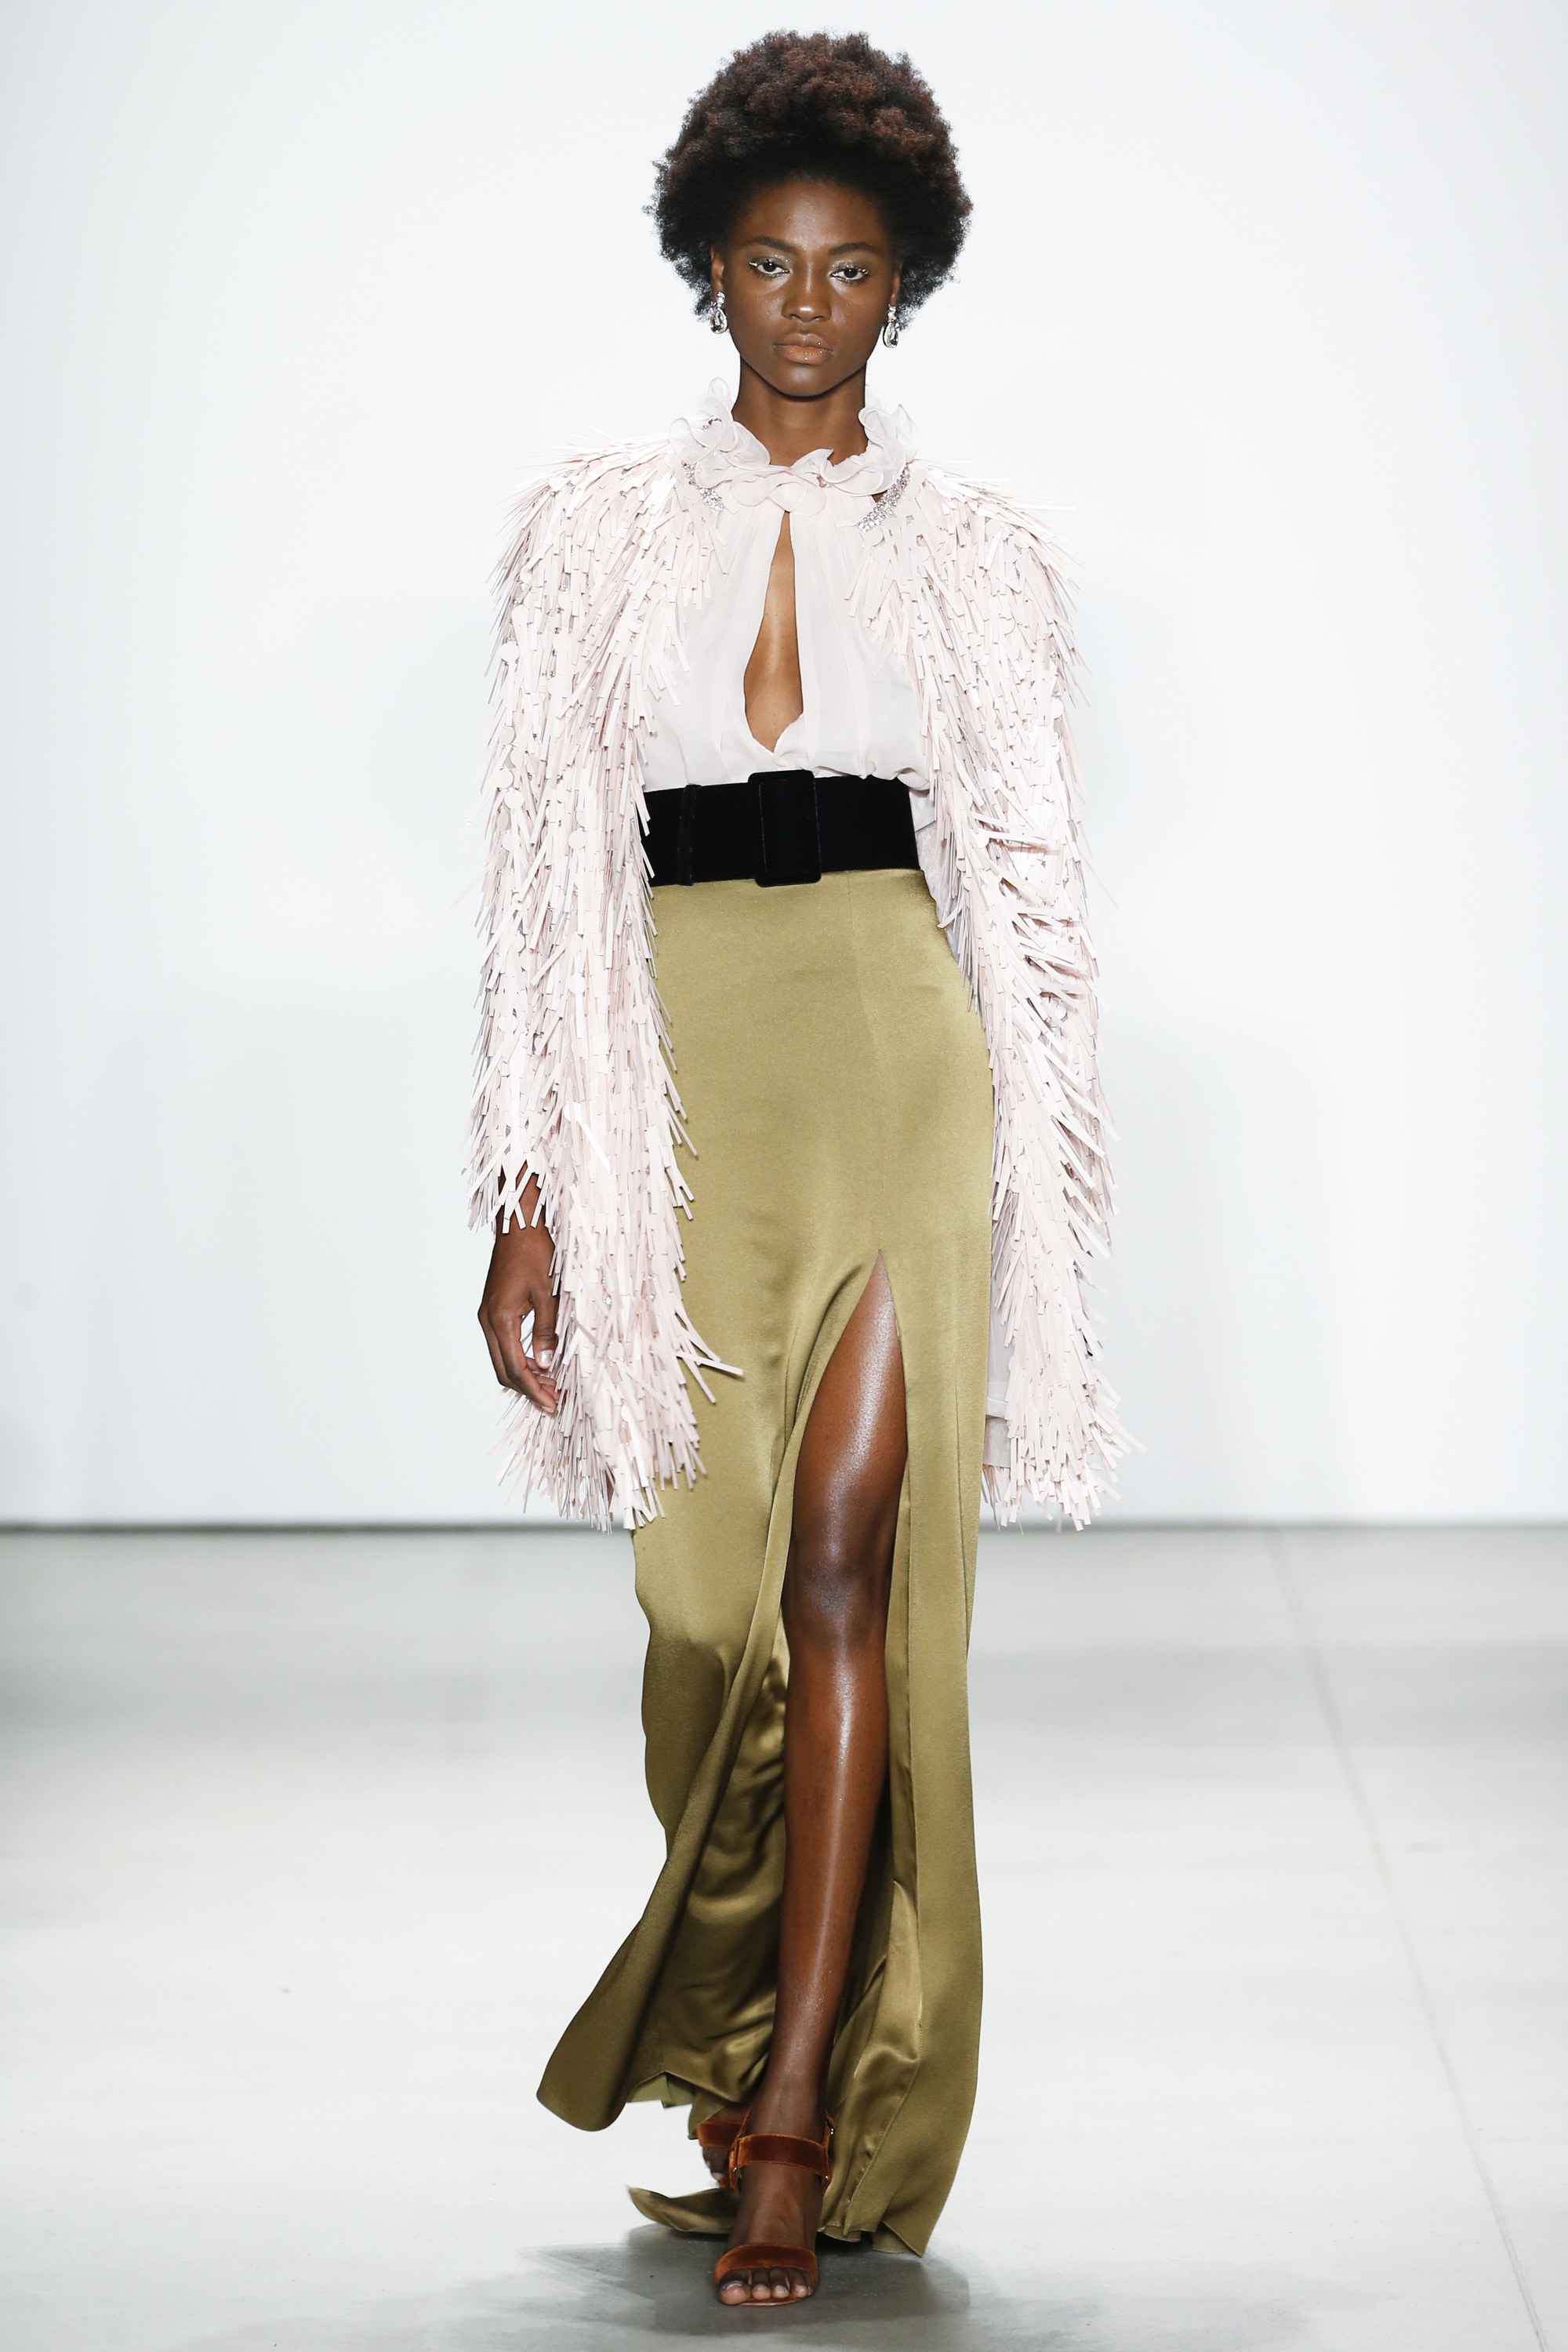 NYFW Jenny Packham Fashion Show Fall:Winter 2016 Louboutins & Love Fashion Blog Esther Santer NYC Street Style Models Collection Hair Makeup Dress Trend Metallic Sequins Gown Gold Beautiful Color Pretty Pink Red Floral Yellow Sheer Front Slit Skirt.jpg